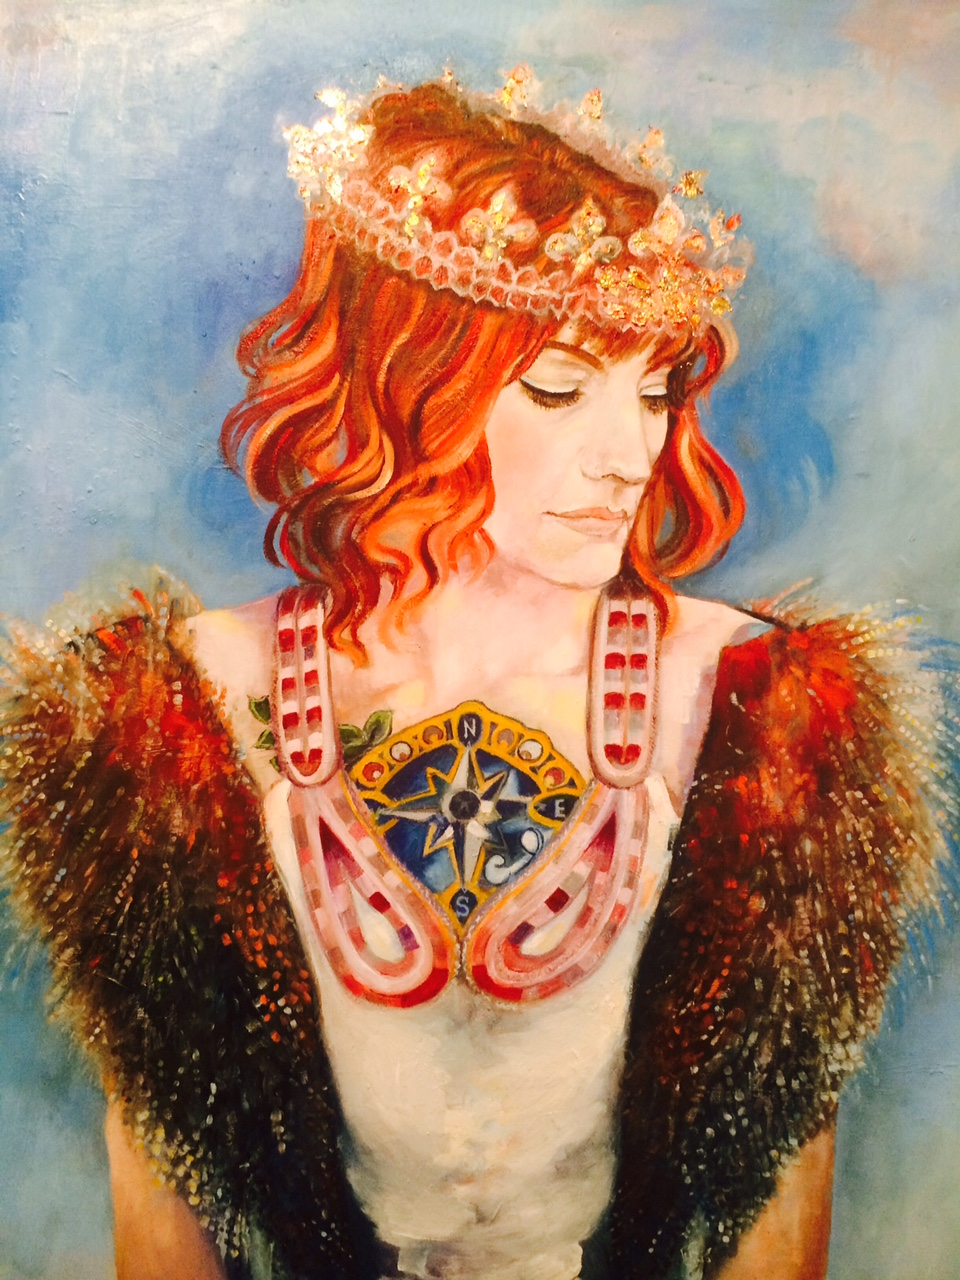 Chanelle: Queen of Fire, 24 x 30 inches,oil and metal leaf on canvas, 2015